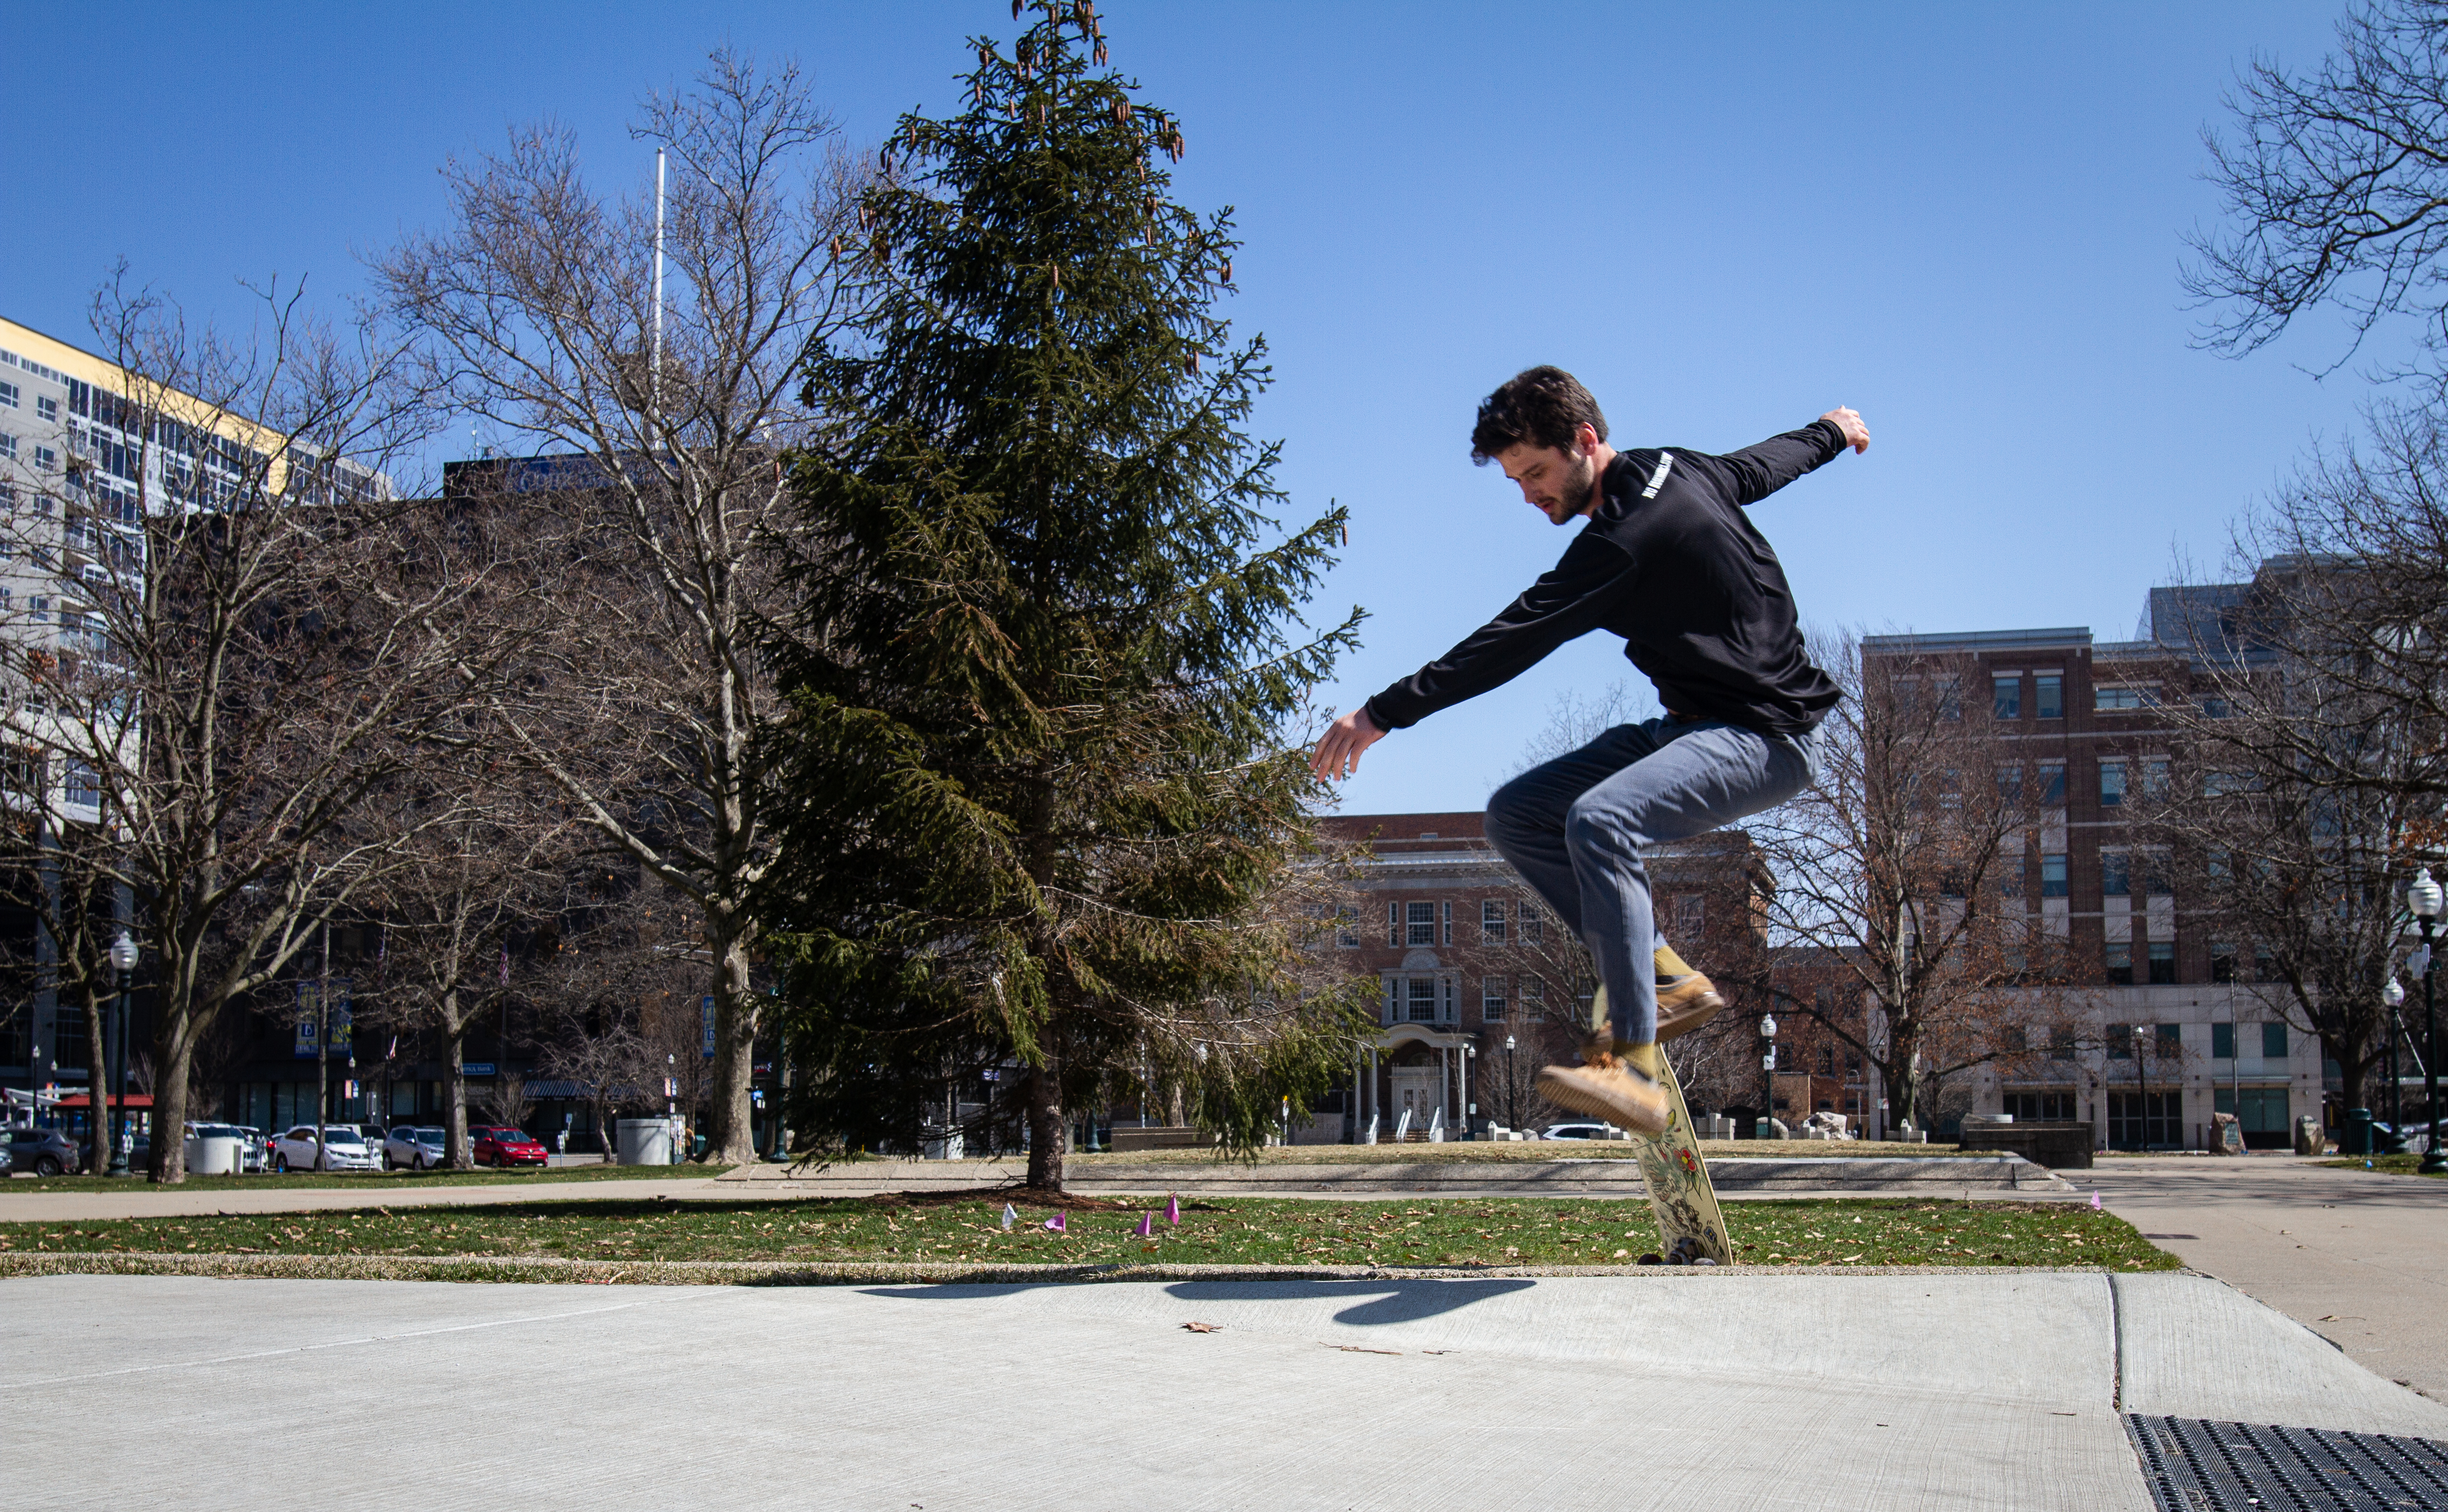 Kalamazoo resident Alex Maile skateboards at Bronson Park in Kalamazoo on Wednesday, March 25, 2020. While Michigan is under a stay-at-home order to prevent the spread of COVID-19, many individuals are using the order as an opportunity to enjoy the outdoors while also practicing safe social distancing. (WWMT/Sarah White)